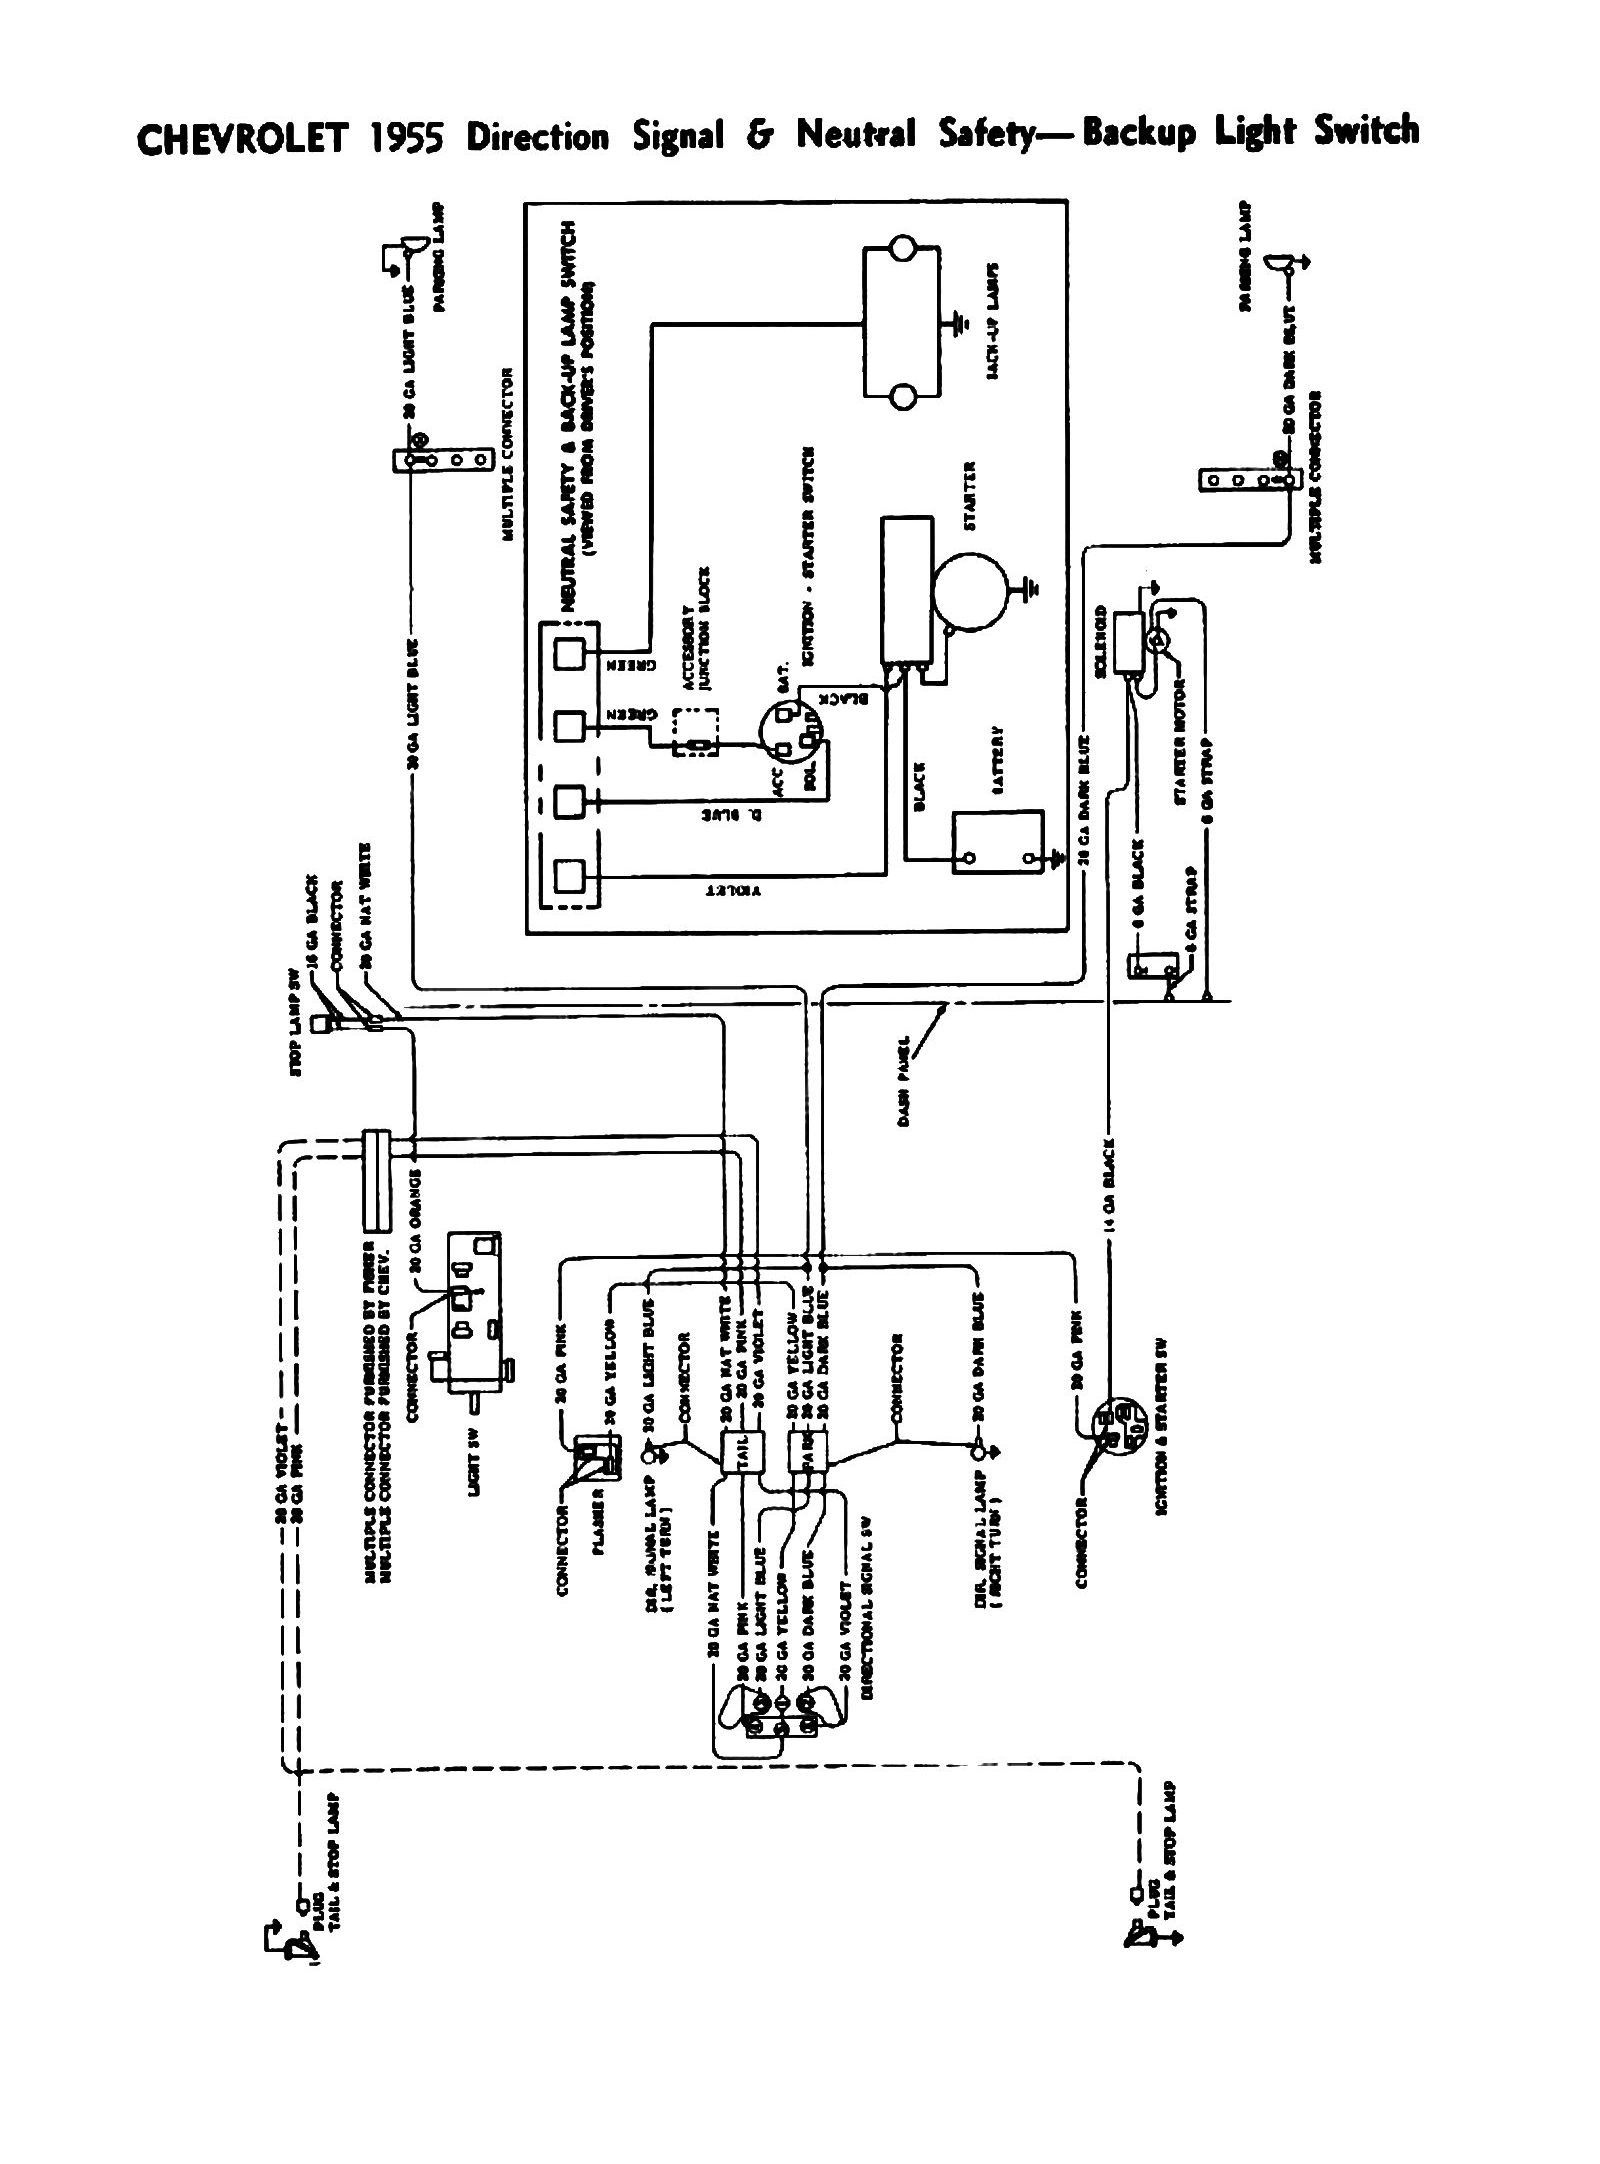 1957 chevy truck wiring diagram 57 chevy painless wiring diagram | wiring diagram